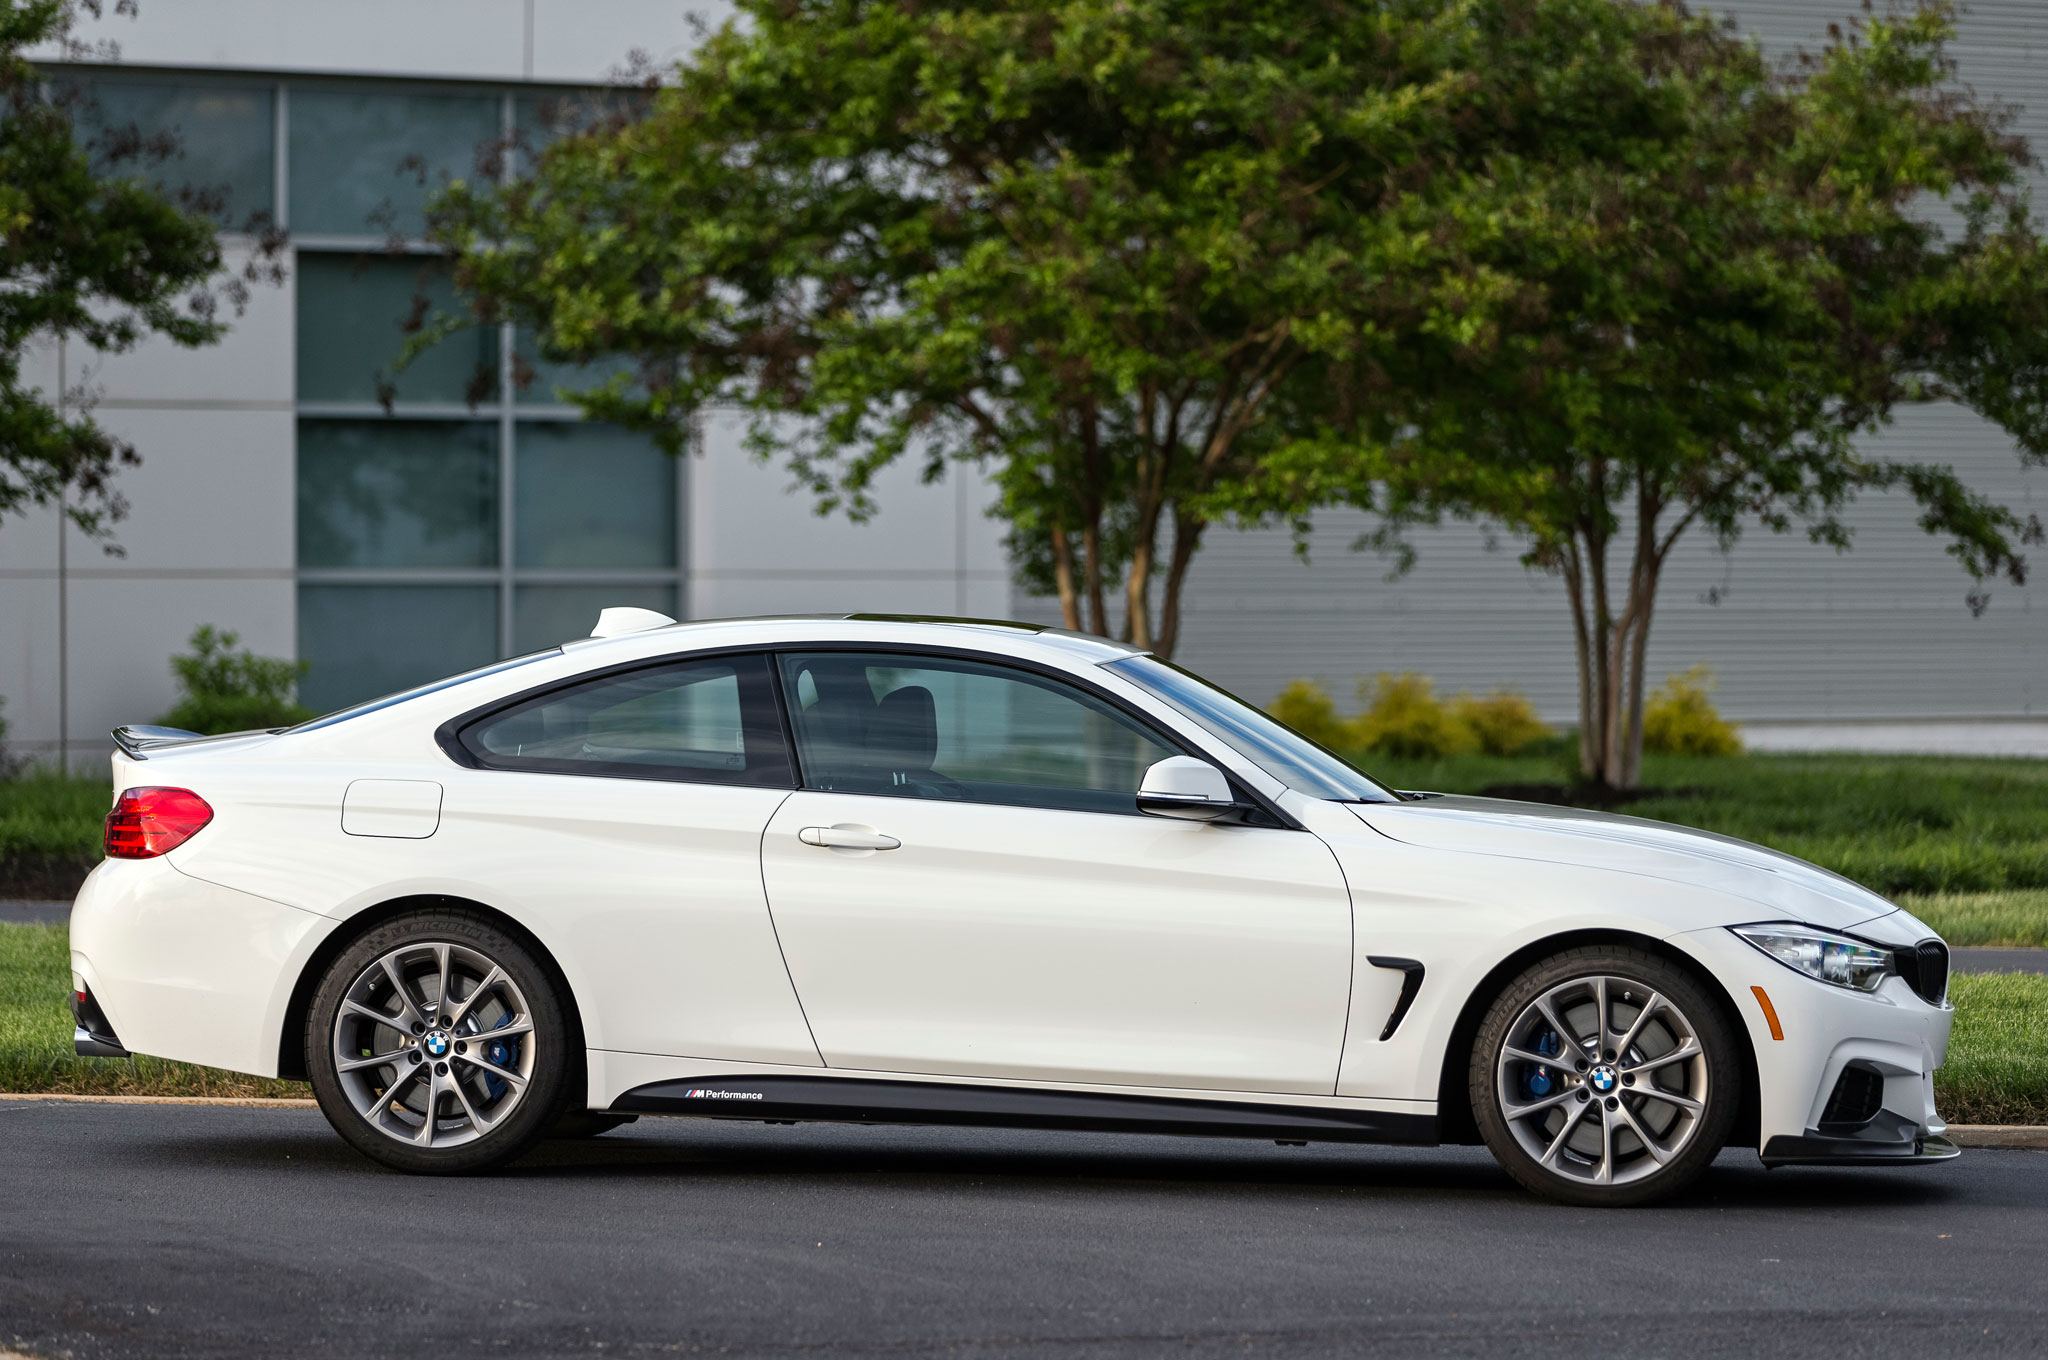 2016 bmw 435i zhp coupe edition gains 35 hp upgraded chassis. Black Bedroom Furniture Sets. Home Design Ideas